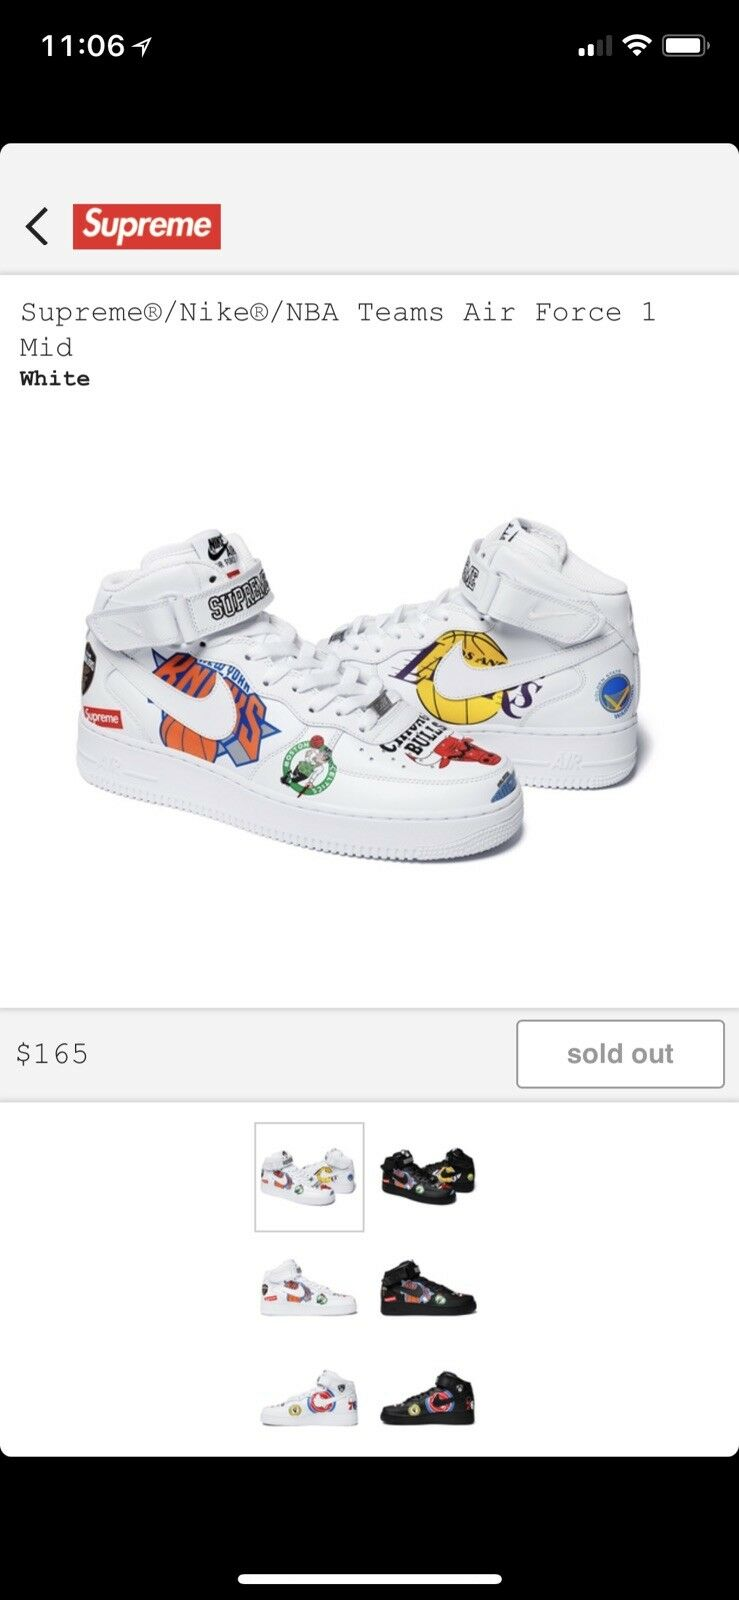 Supreme Nike NBA Air Force 1 Mid White Size 10.5 SS18